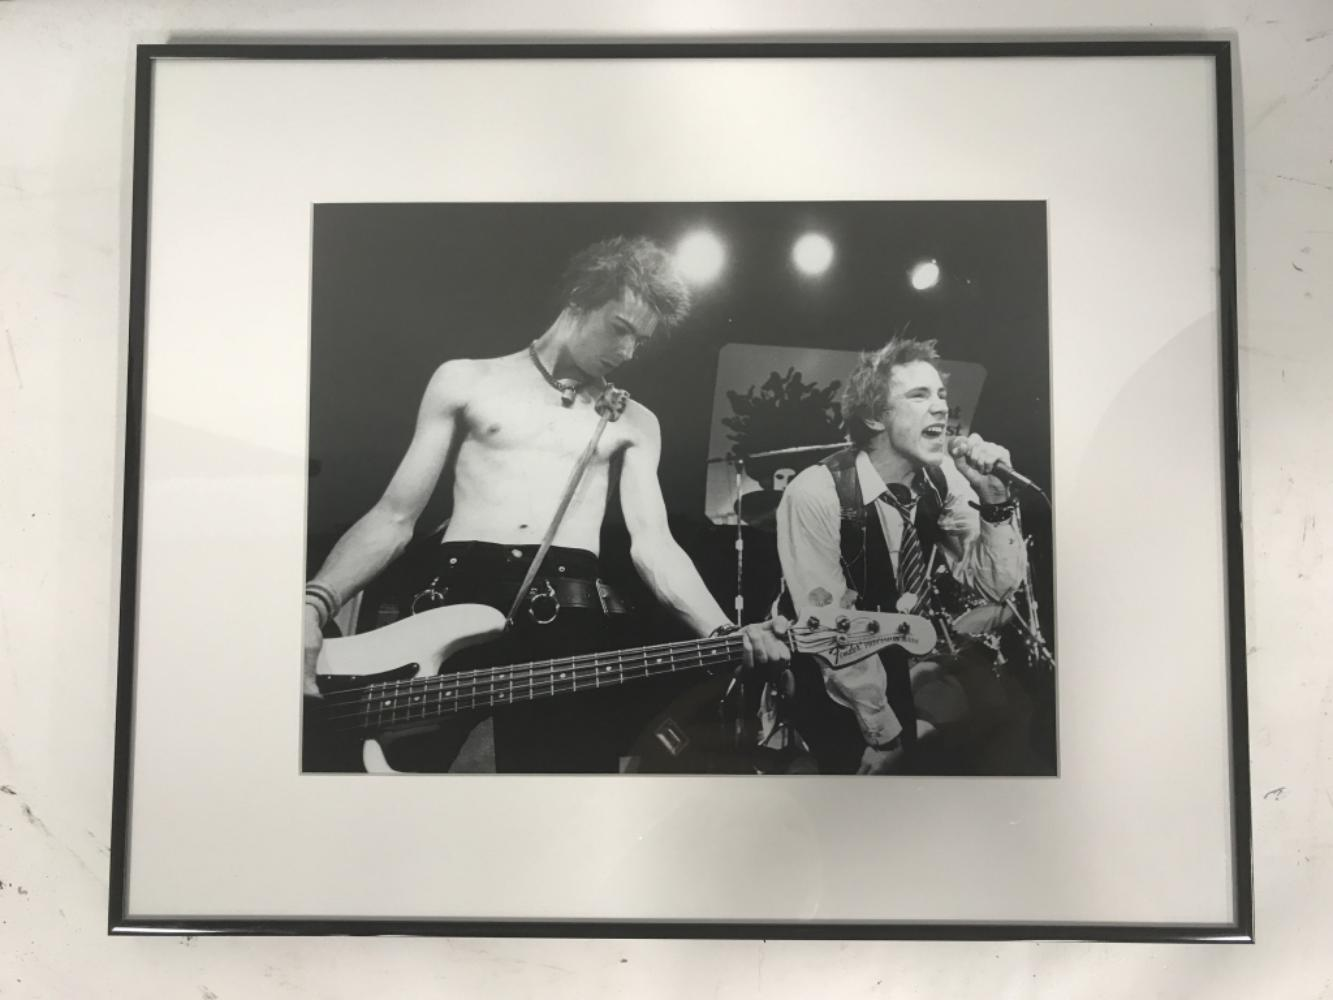 Johnny Rotten & Sid Vicious B&W Photograph Print